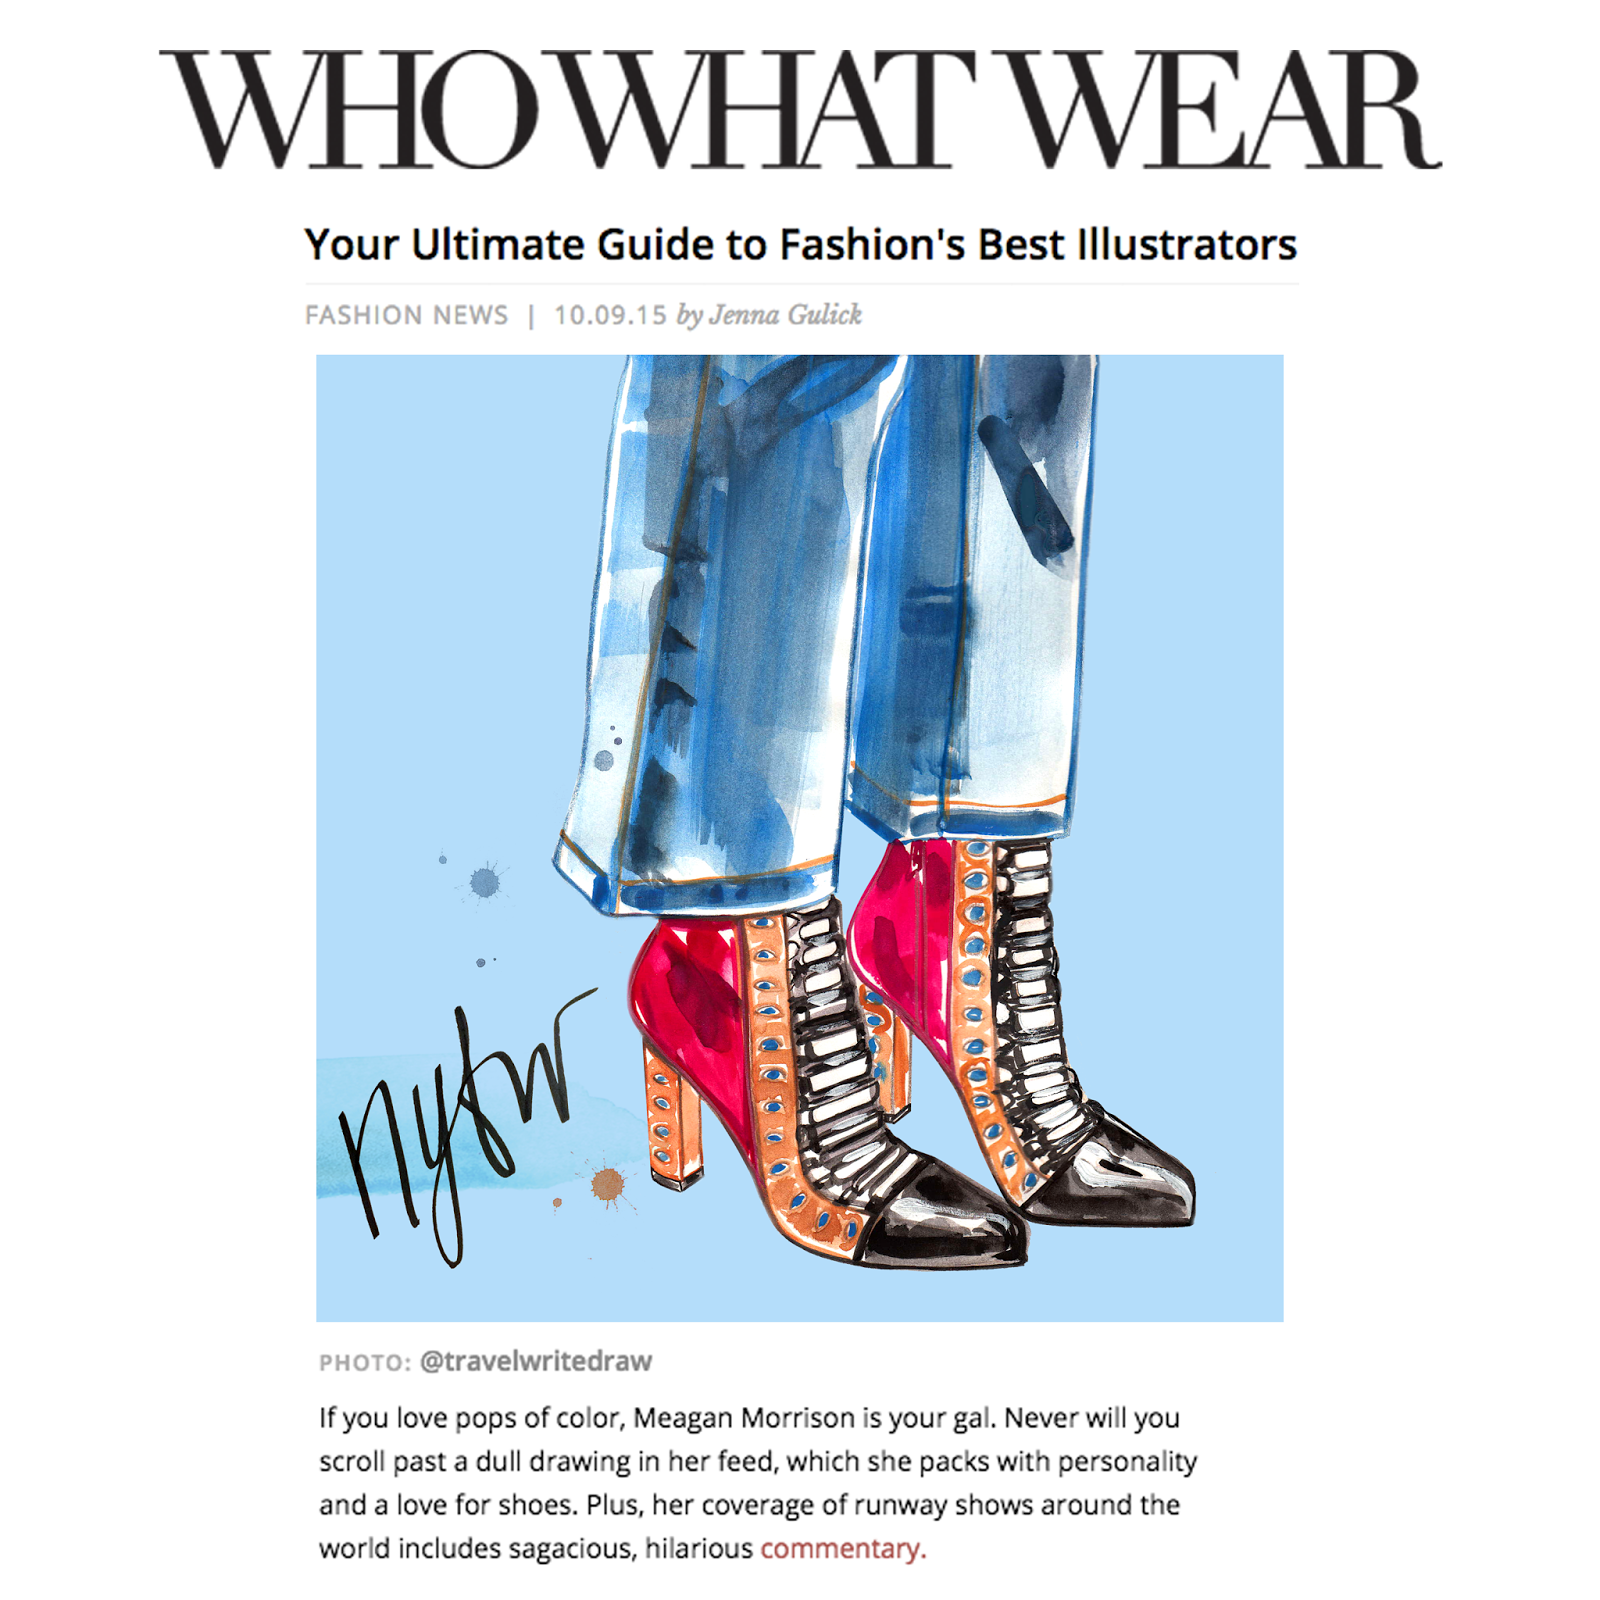 Your Ultimate Guide to Fashions Best Illustrators